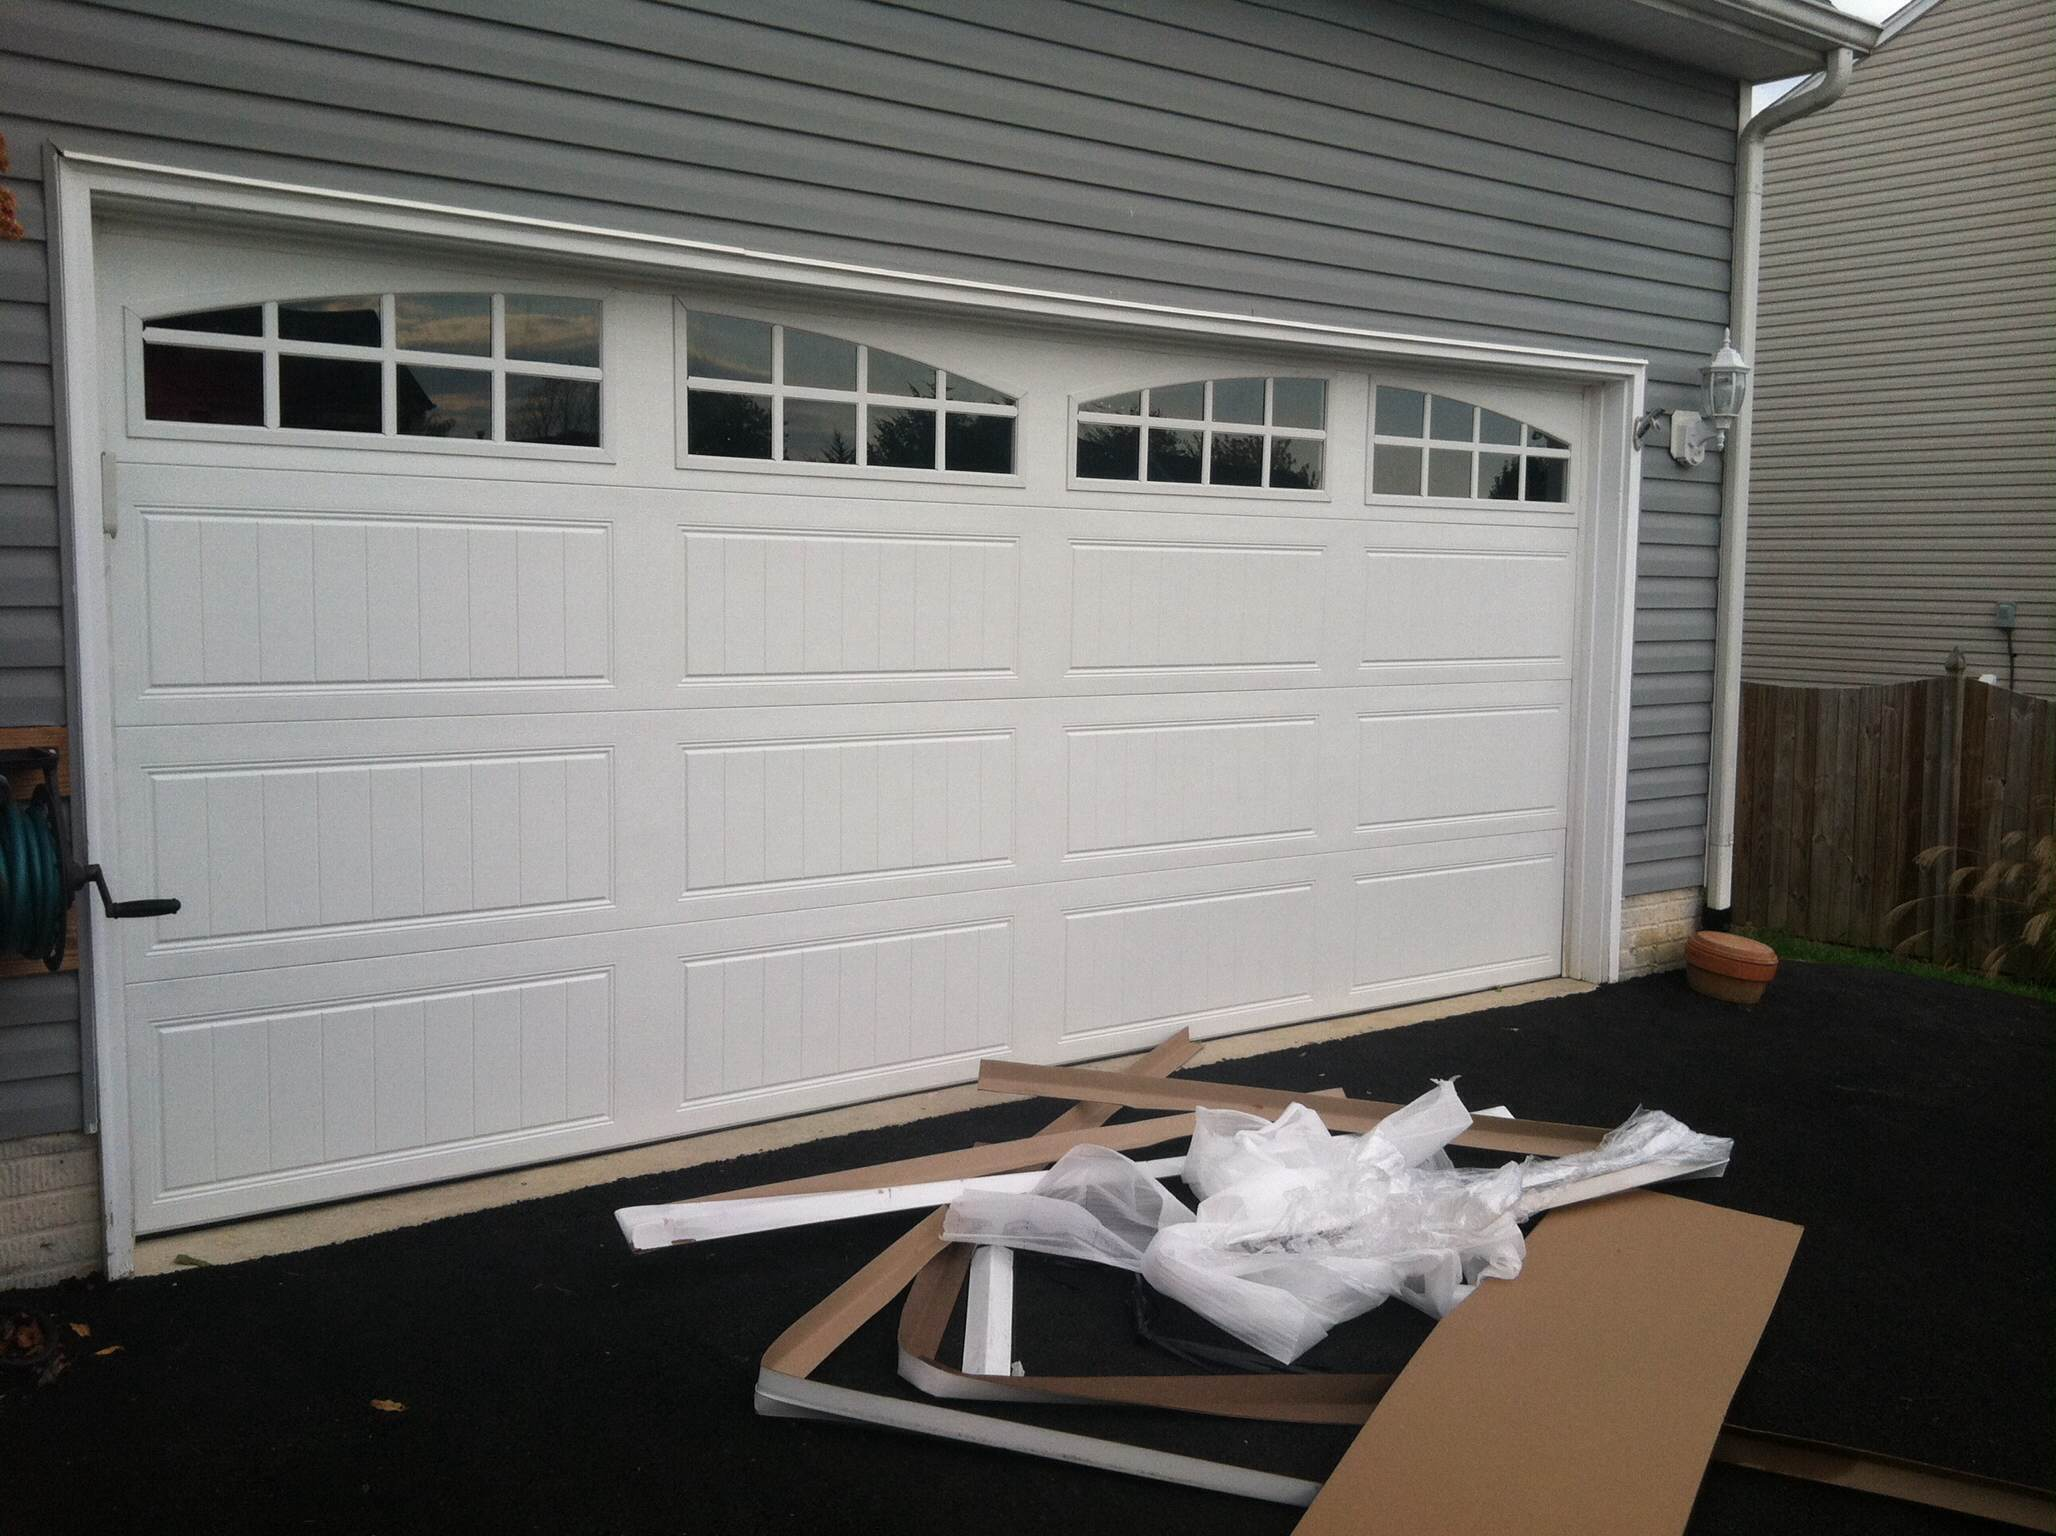 Garage Door Repair Maintenance Services In Herndon VA